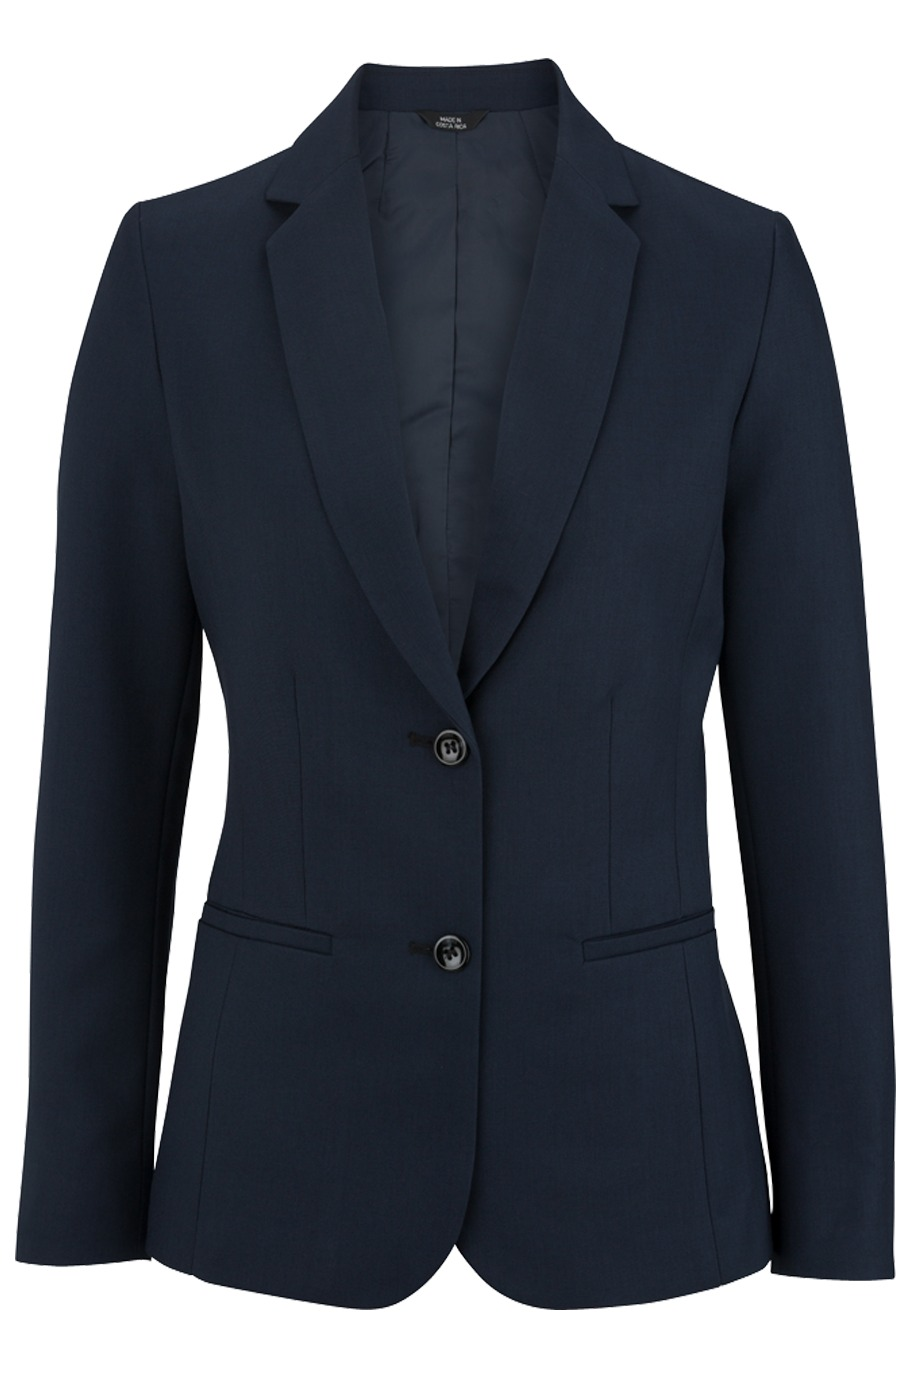 Ladies' Synergy Washable Suit Coat Longer Length.jpg